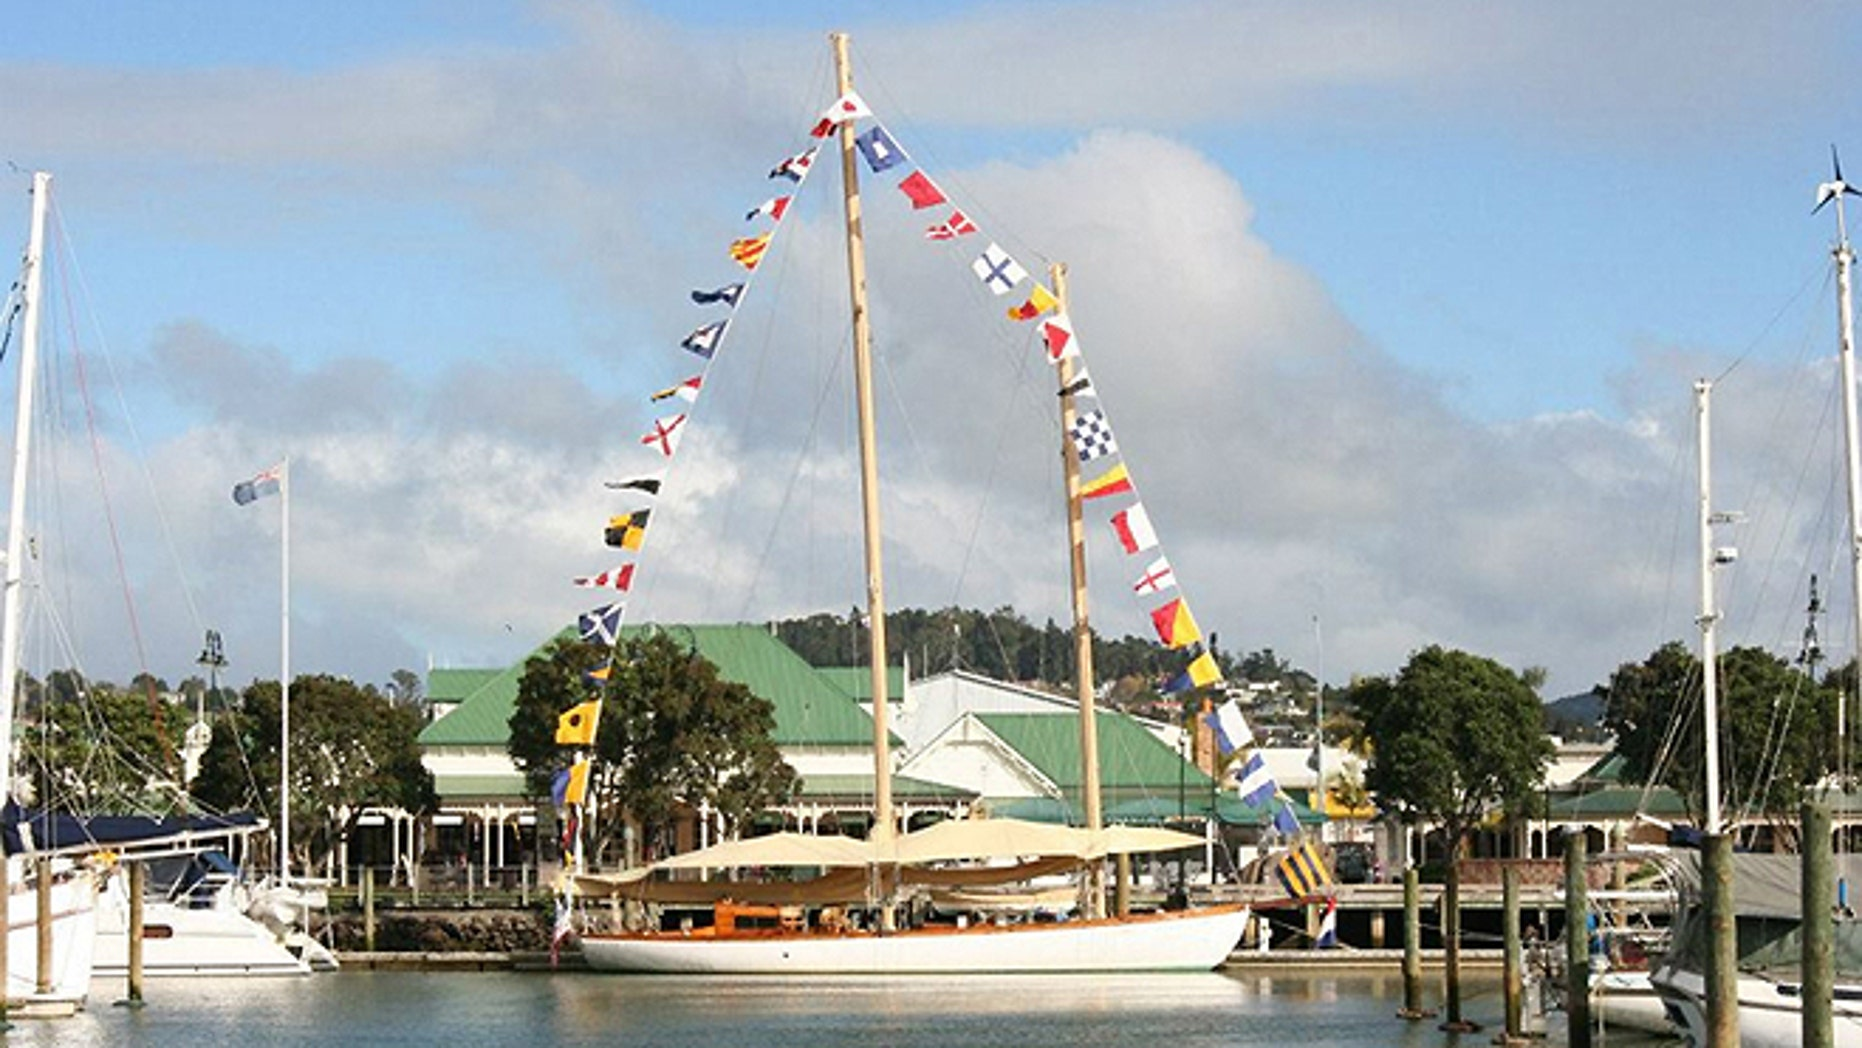 In this undated photo provided by Maritime New Zealand the yacht Nina, center, is tied at dock at a unidentified location. (AP/Maritime New Zealand)